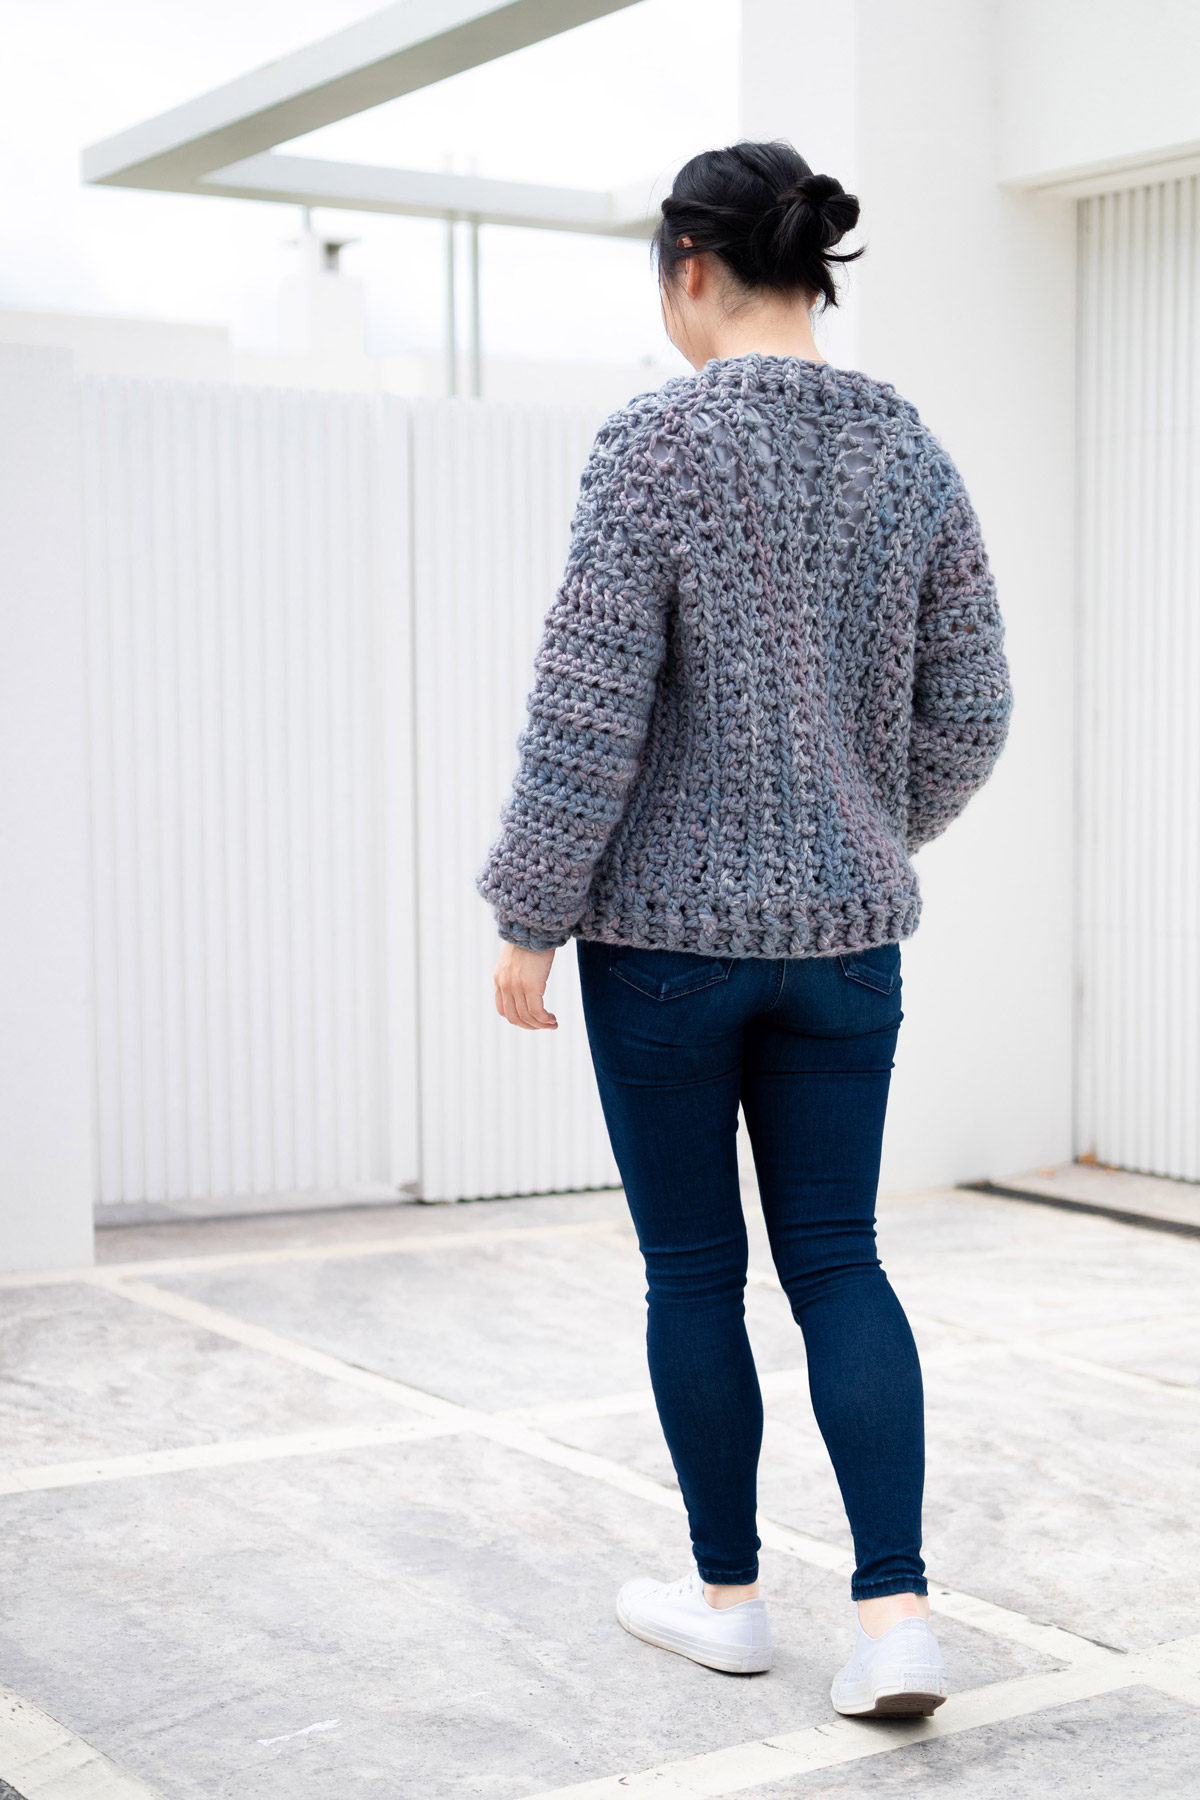 chunky crochet cardigan back view